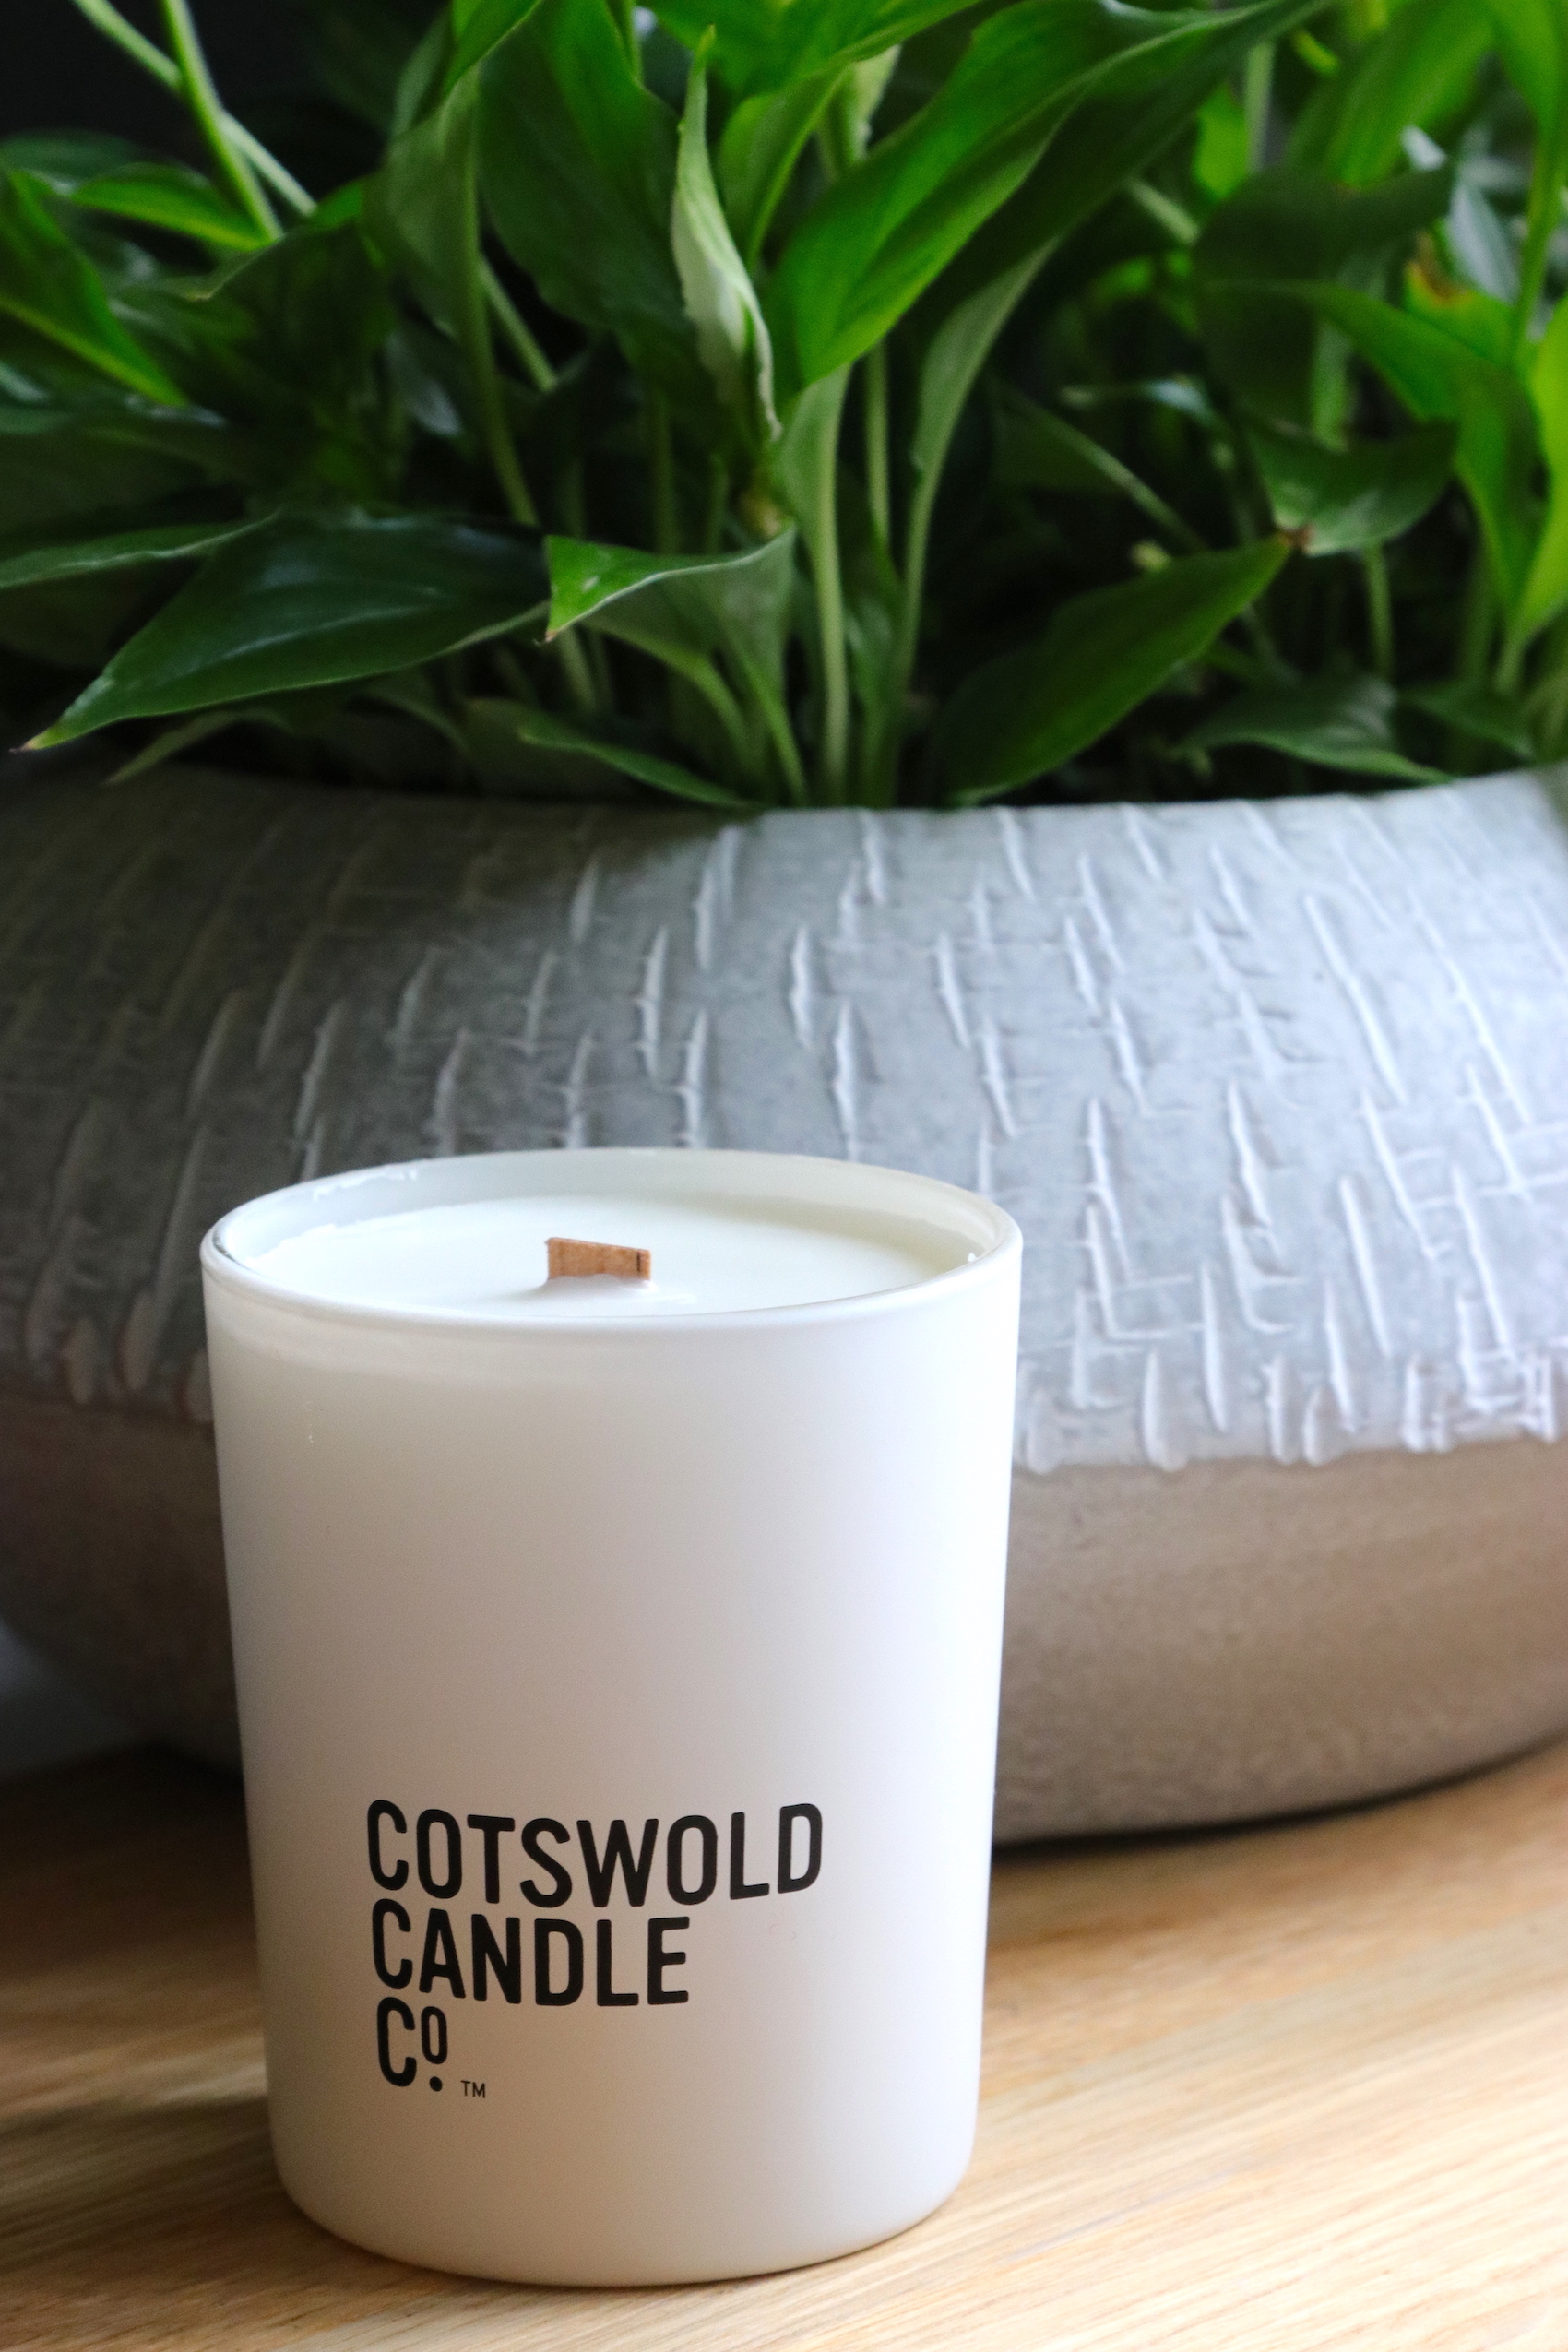 Cotswold Candle Co - Humphrey Munson Blog